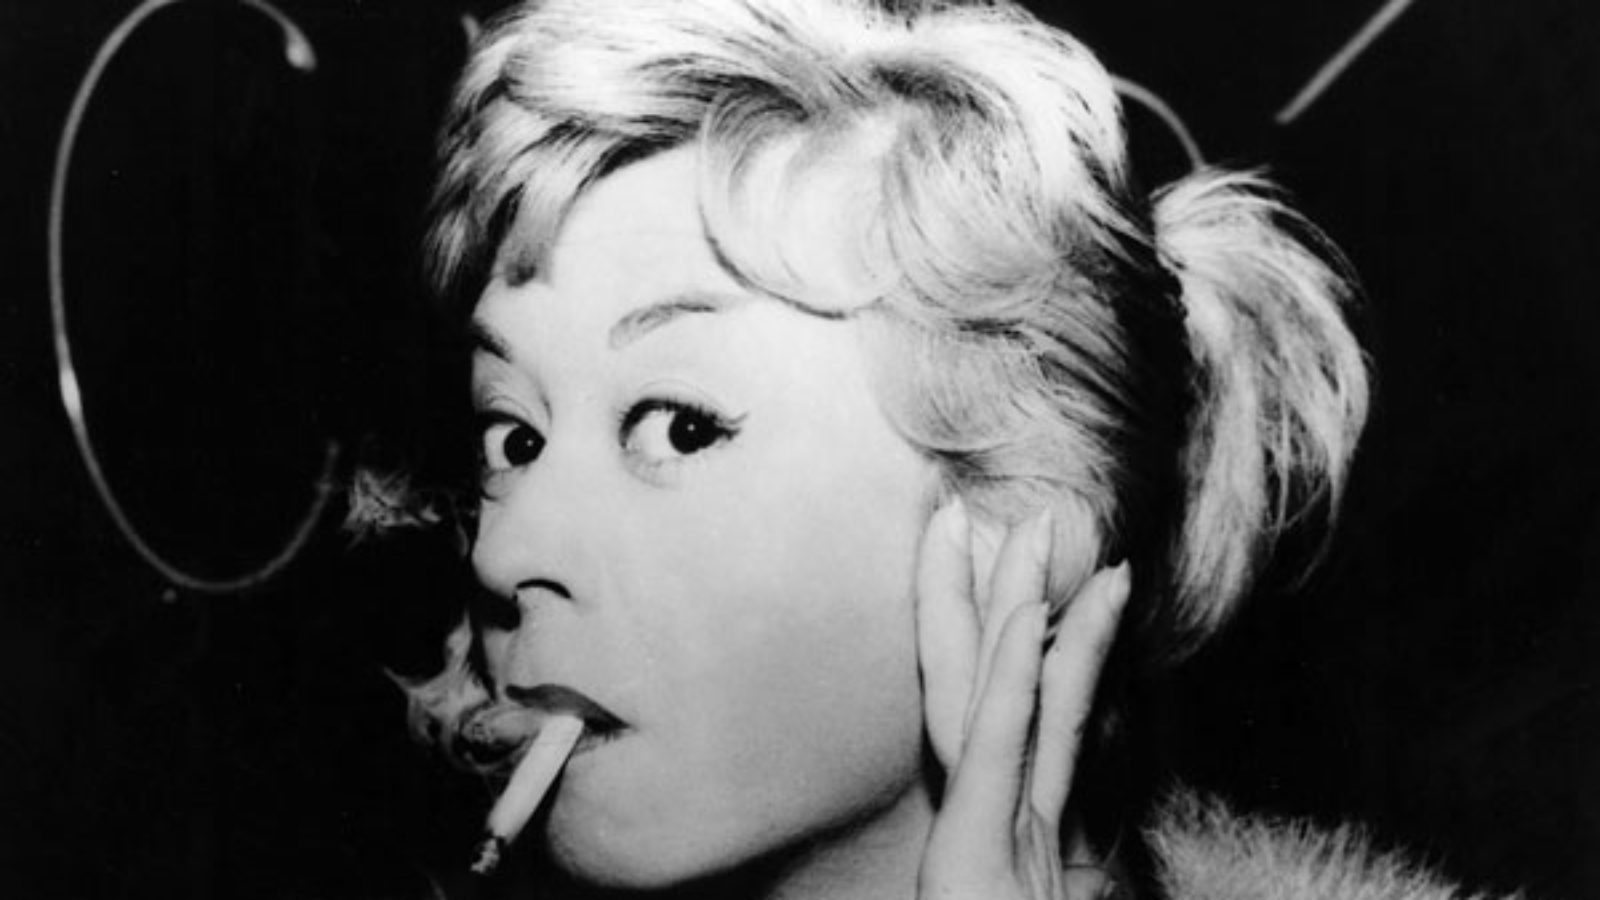 Le notti di Cabiria (Nights of Cabiria)